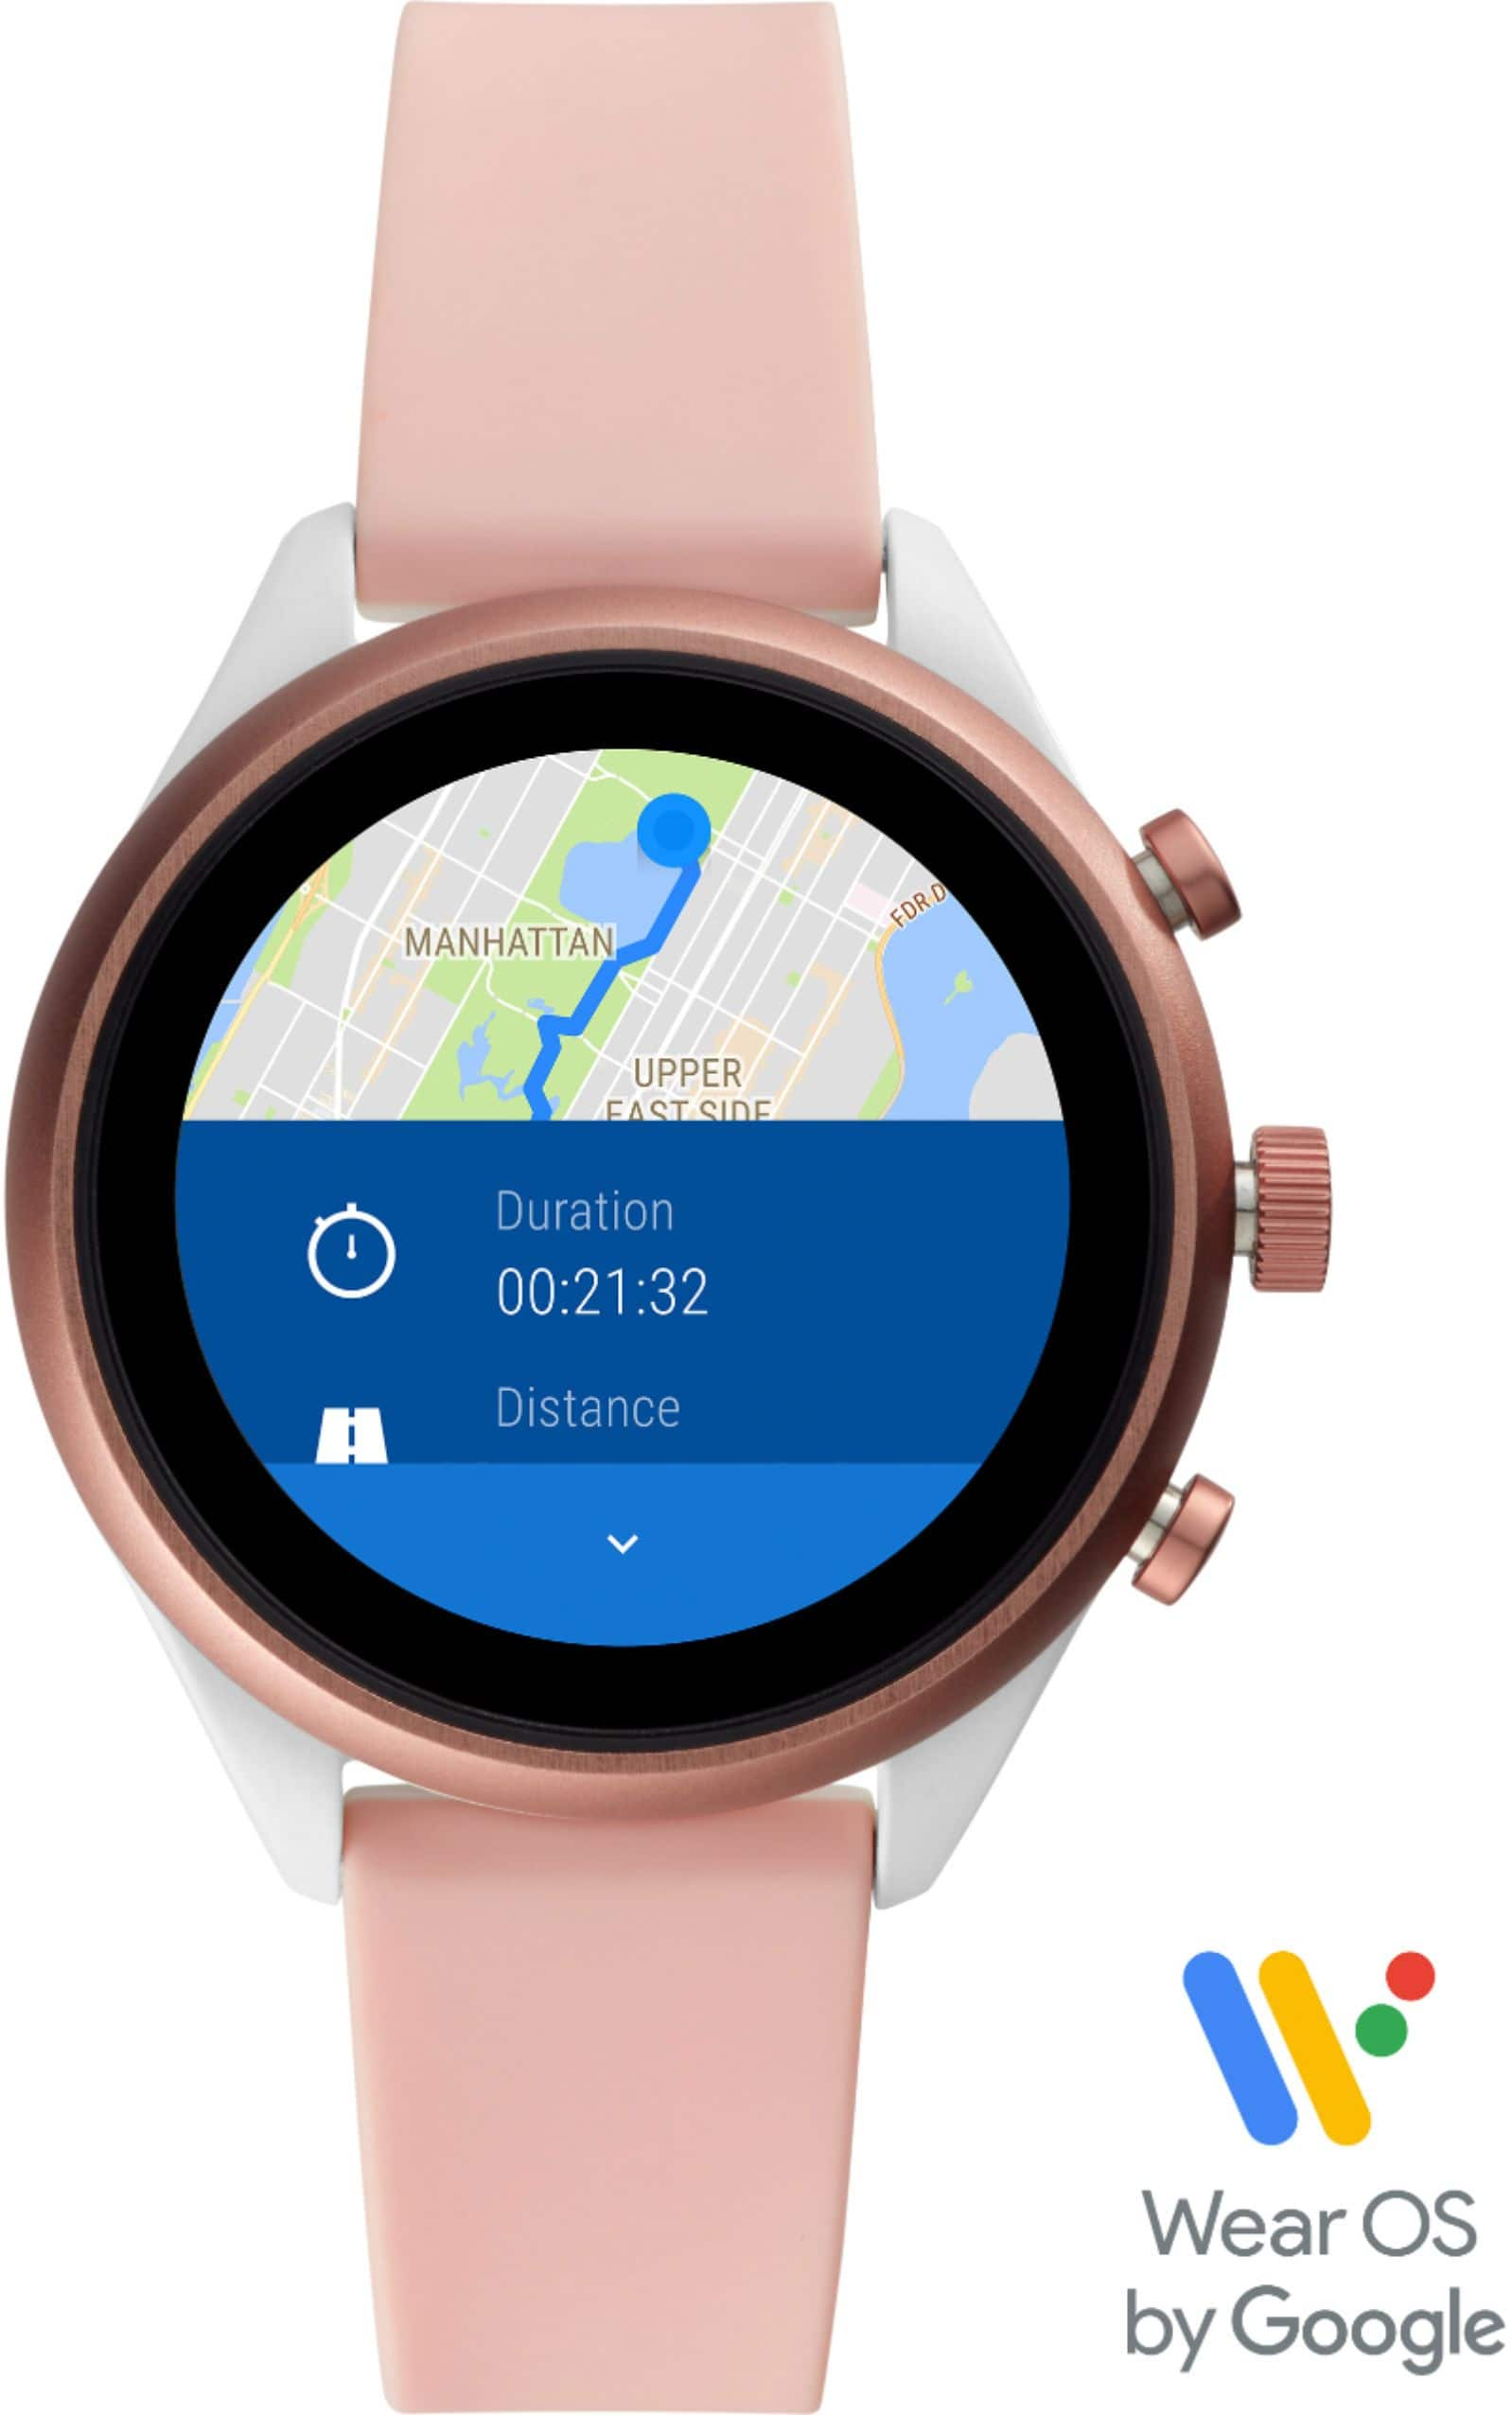 Fossil - Sport Smartwatch 41mm Aluminum - Blush with Blush Silicone Band - $99 + FS @Bestbuy